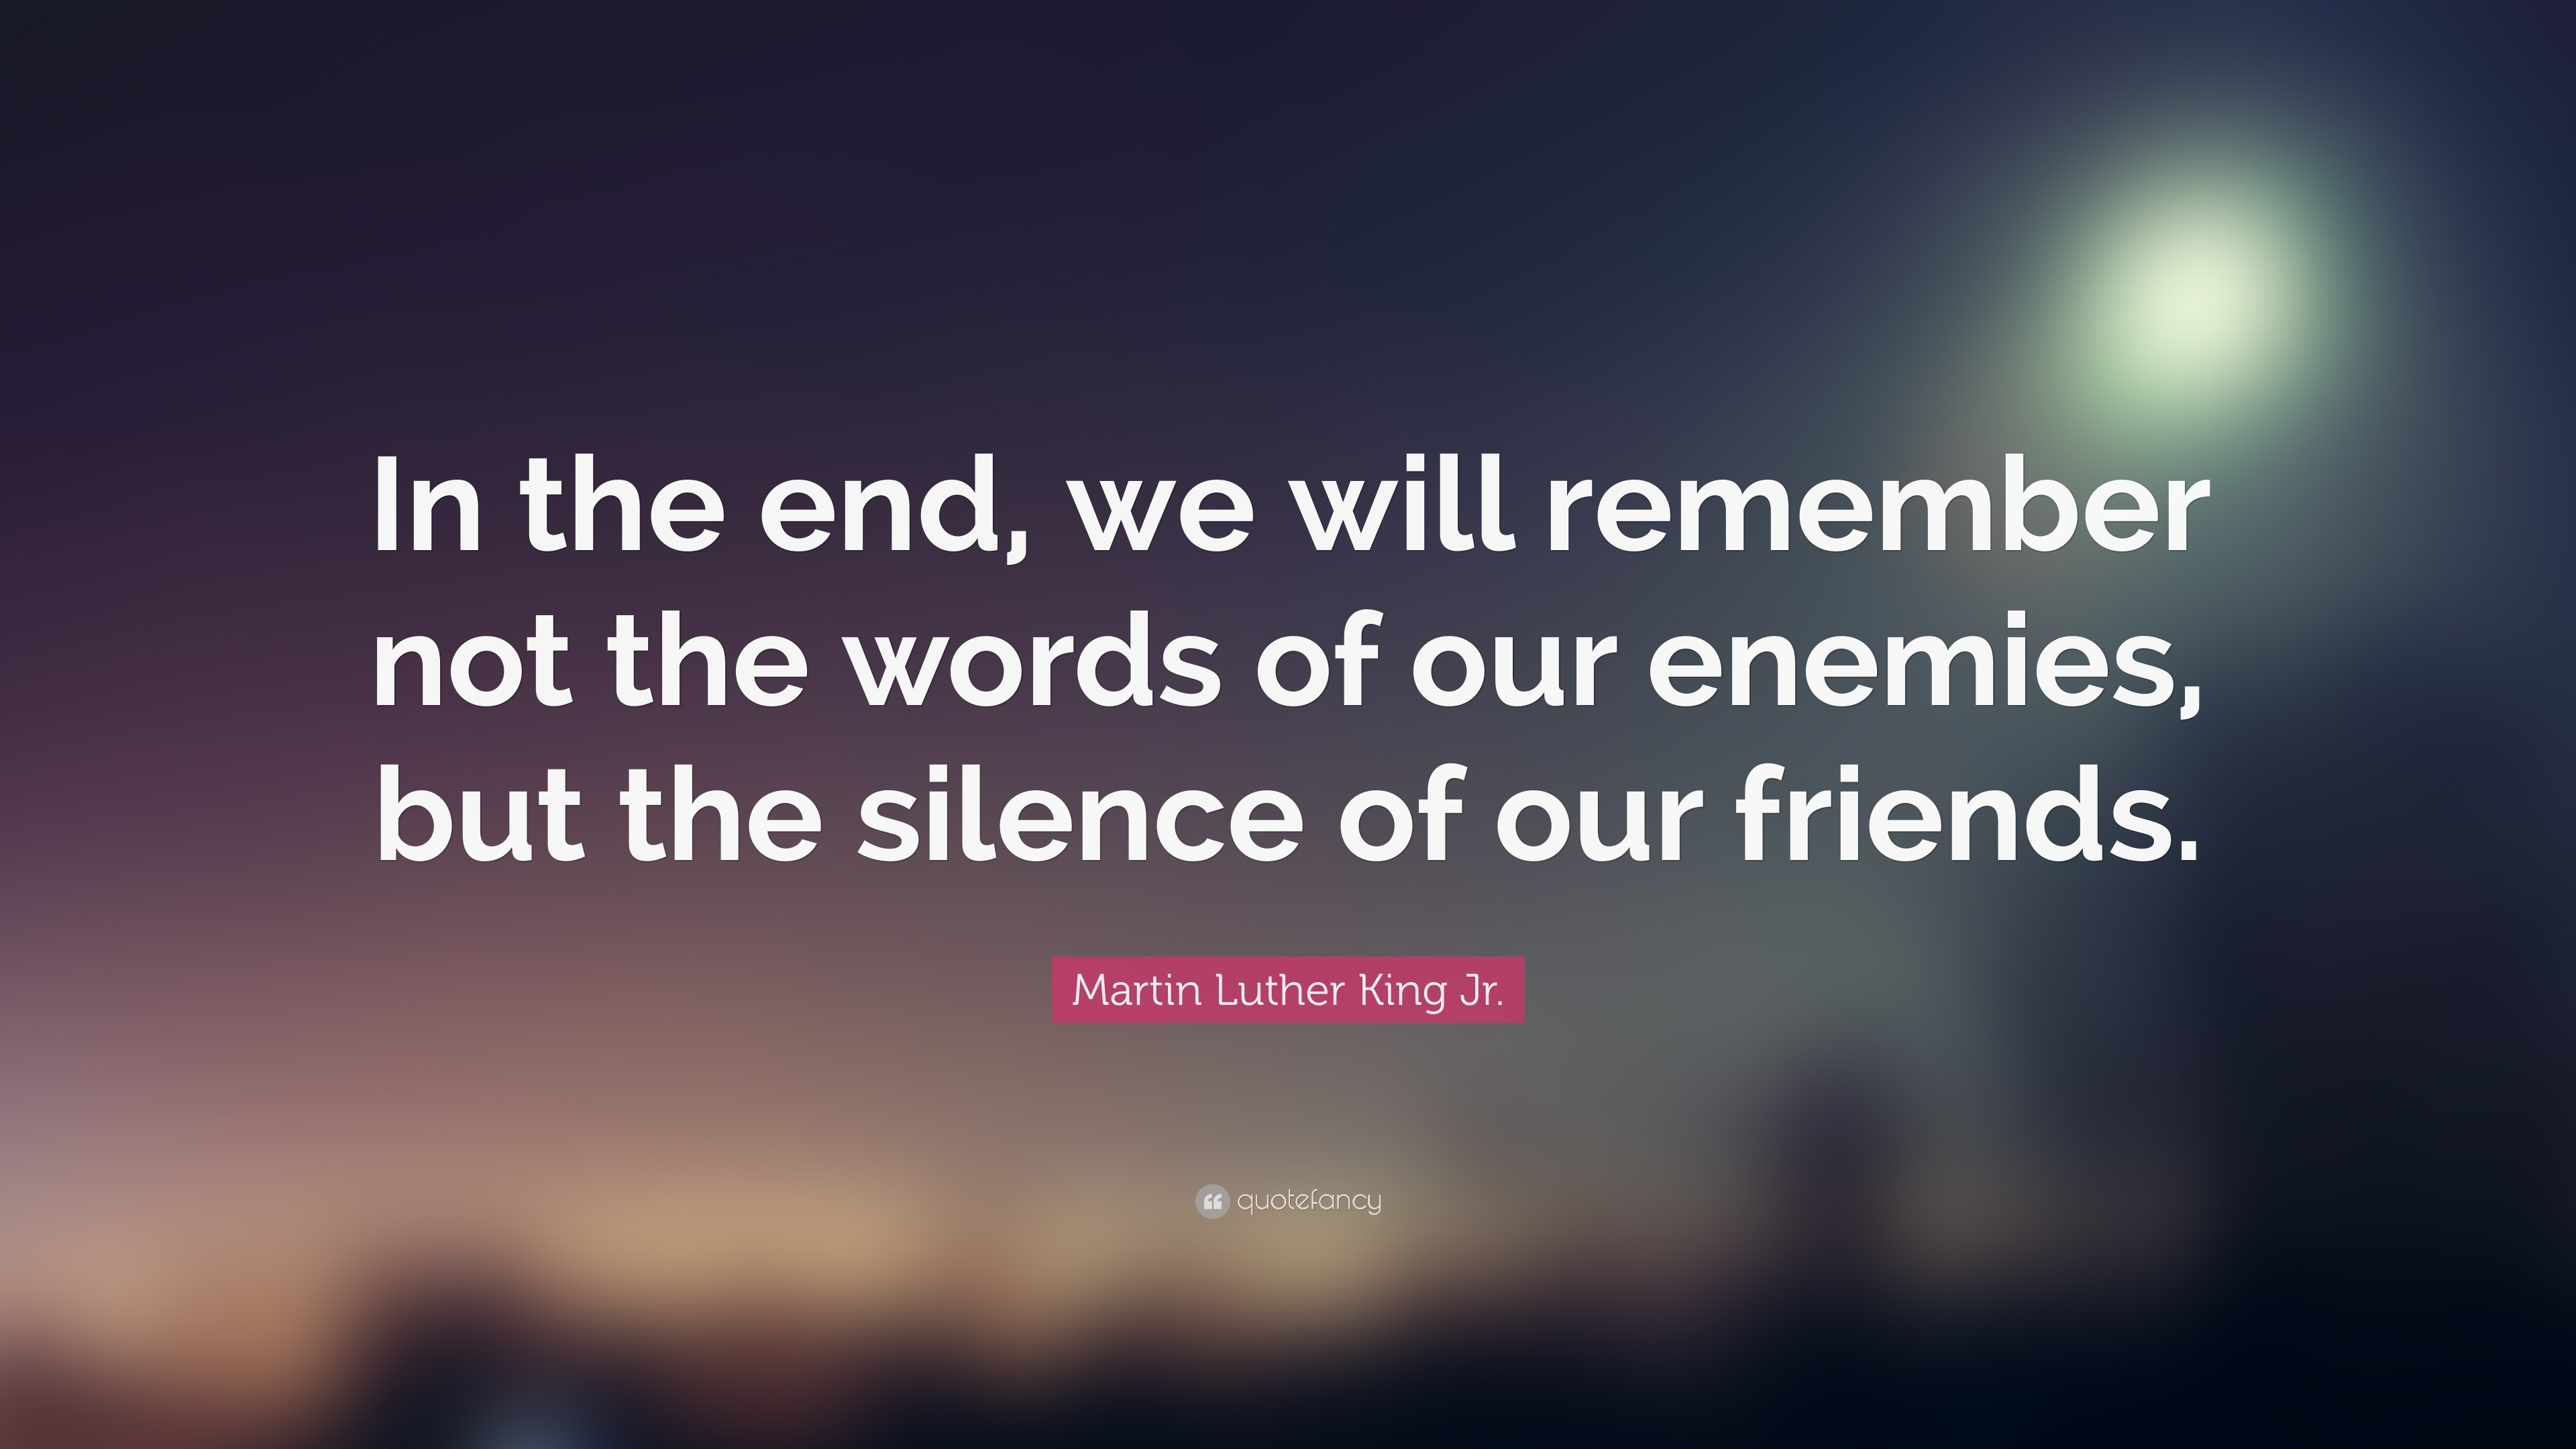 in the end we will remember not the words of our enemies but the silence of our friends Home quotes friendship quotes in the end, we will remember not the words of our enemies, but the silence of our friends.